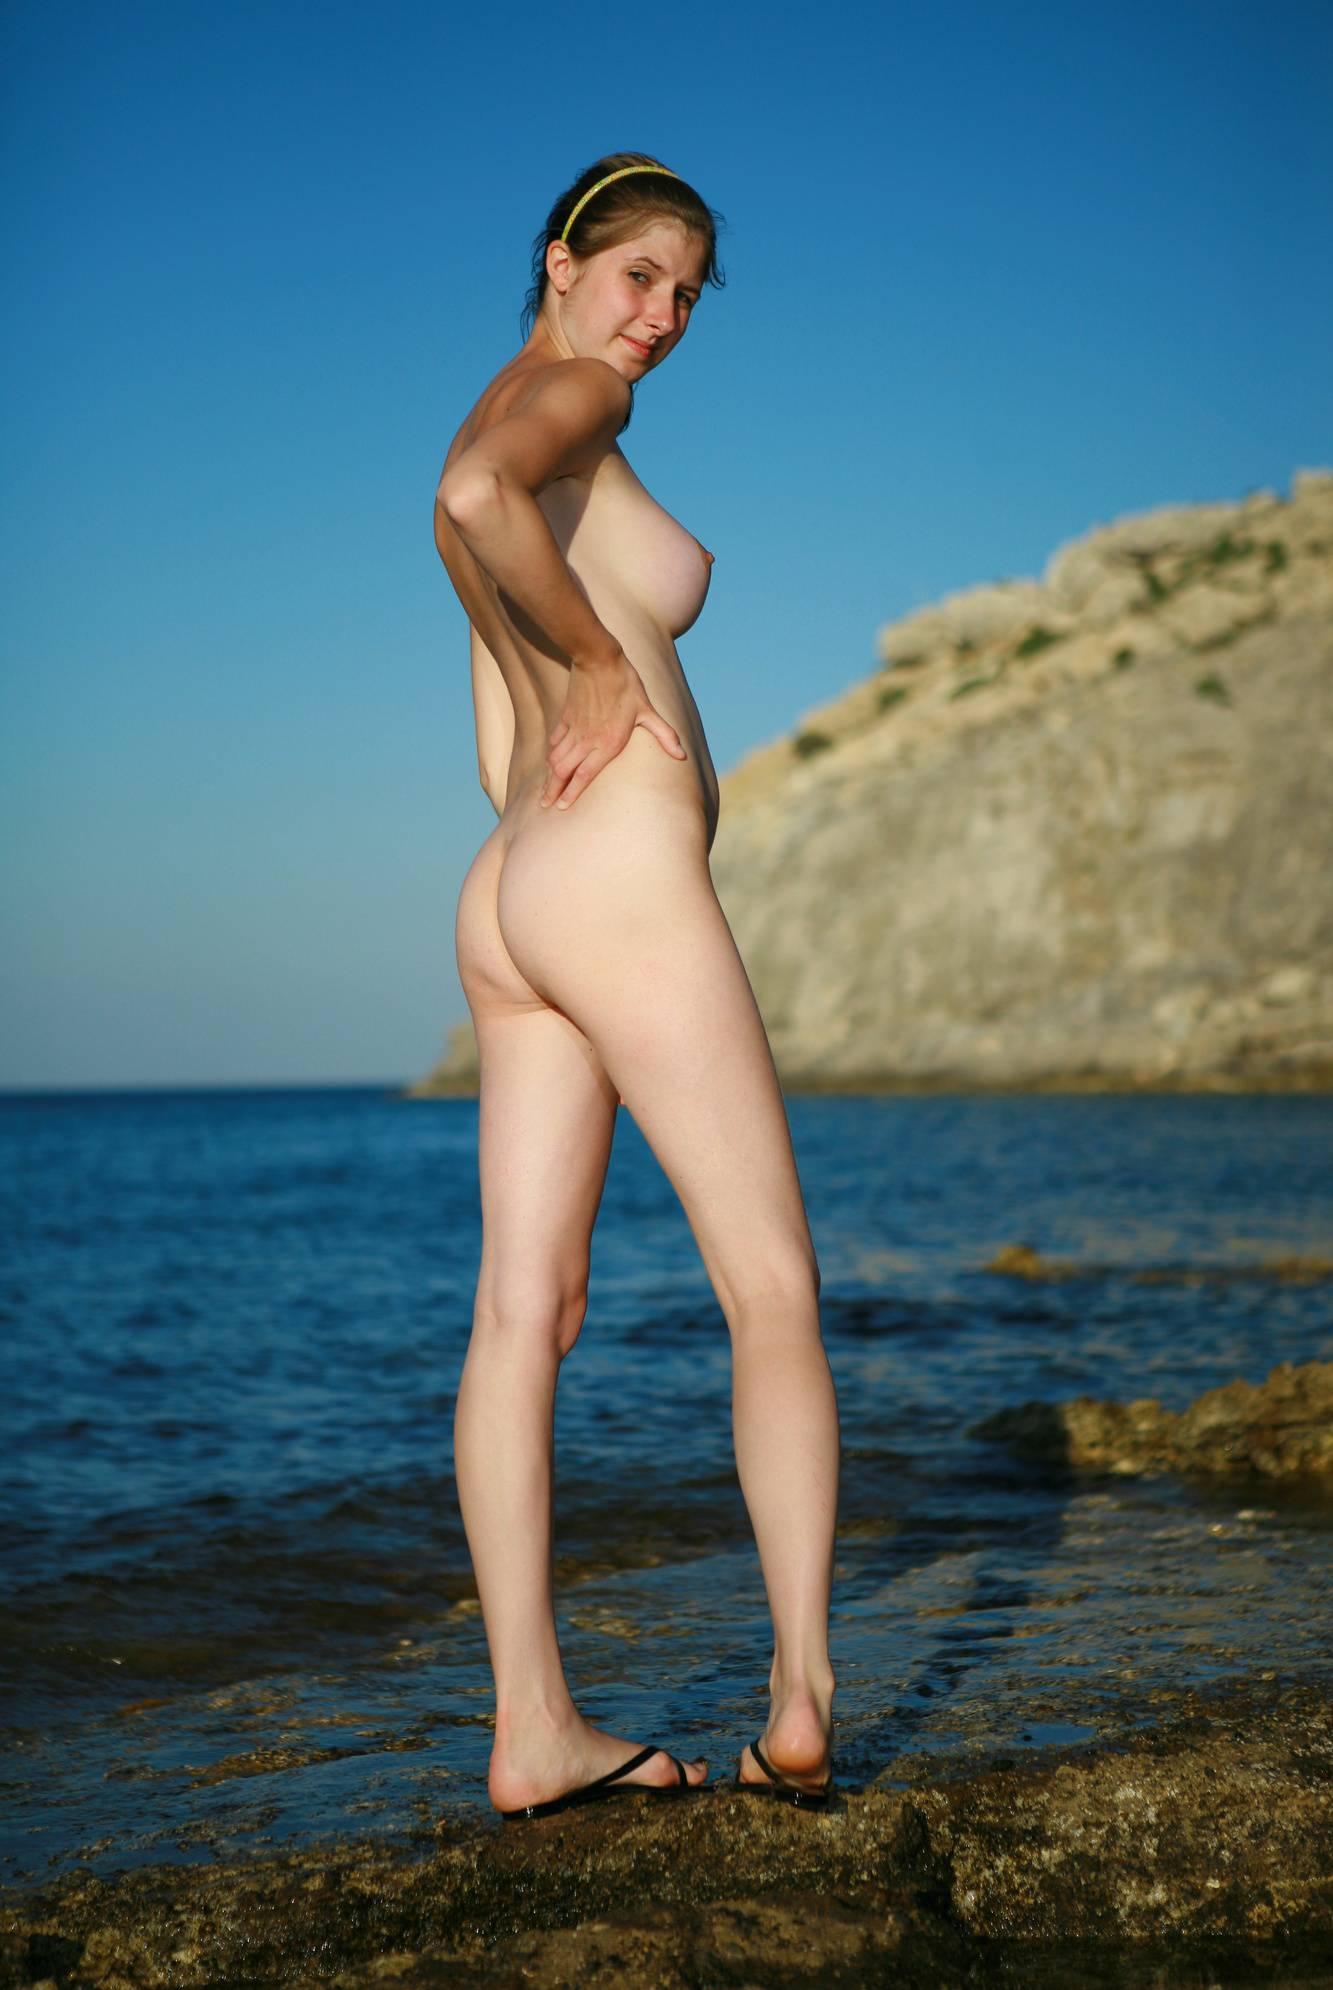 Nudist Photos Greek Island Hoppers - 1